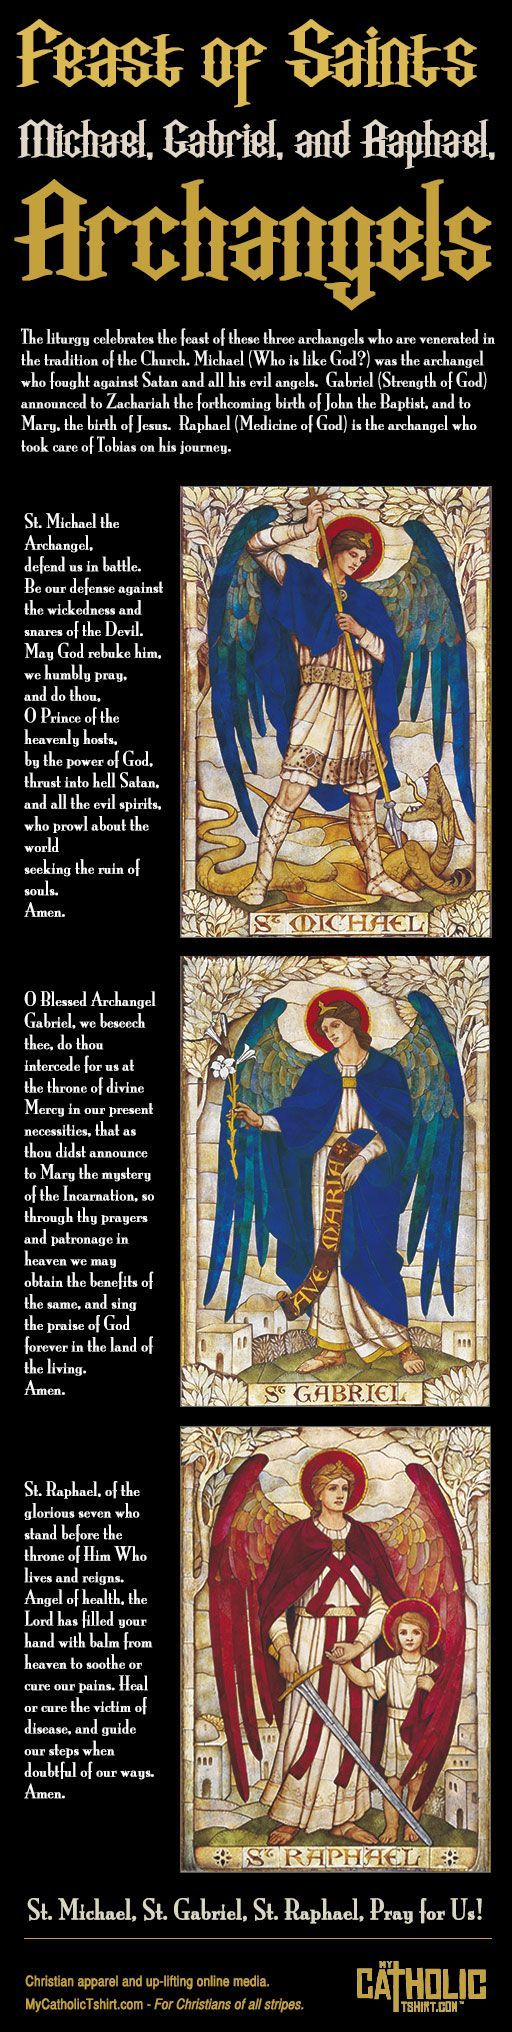 Archangels names and meanings catholic - The Liturgy Celebrates The Feast Of These Three Archangels Who Are Venerated In The Tradition Of